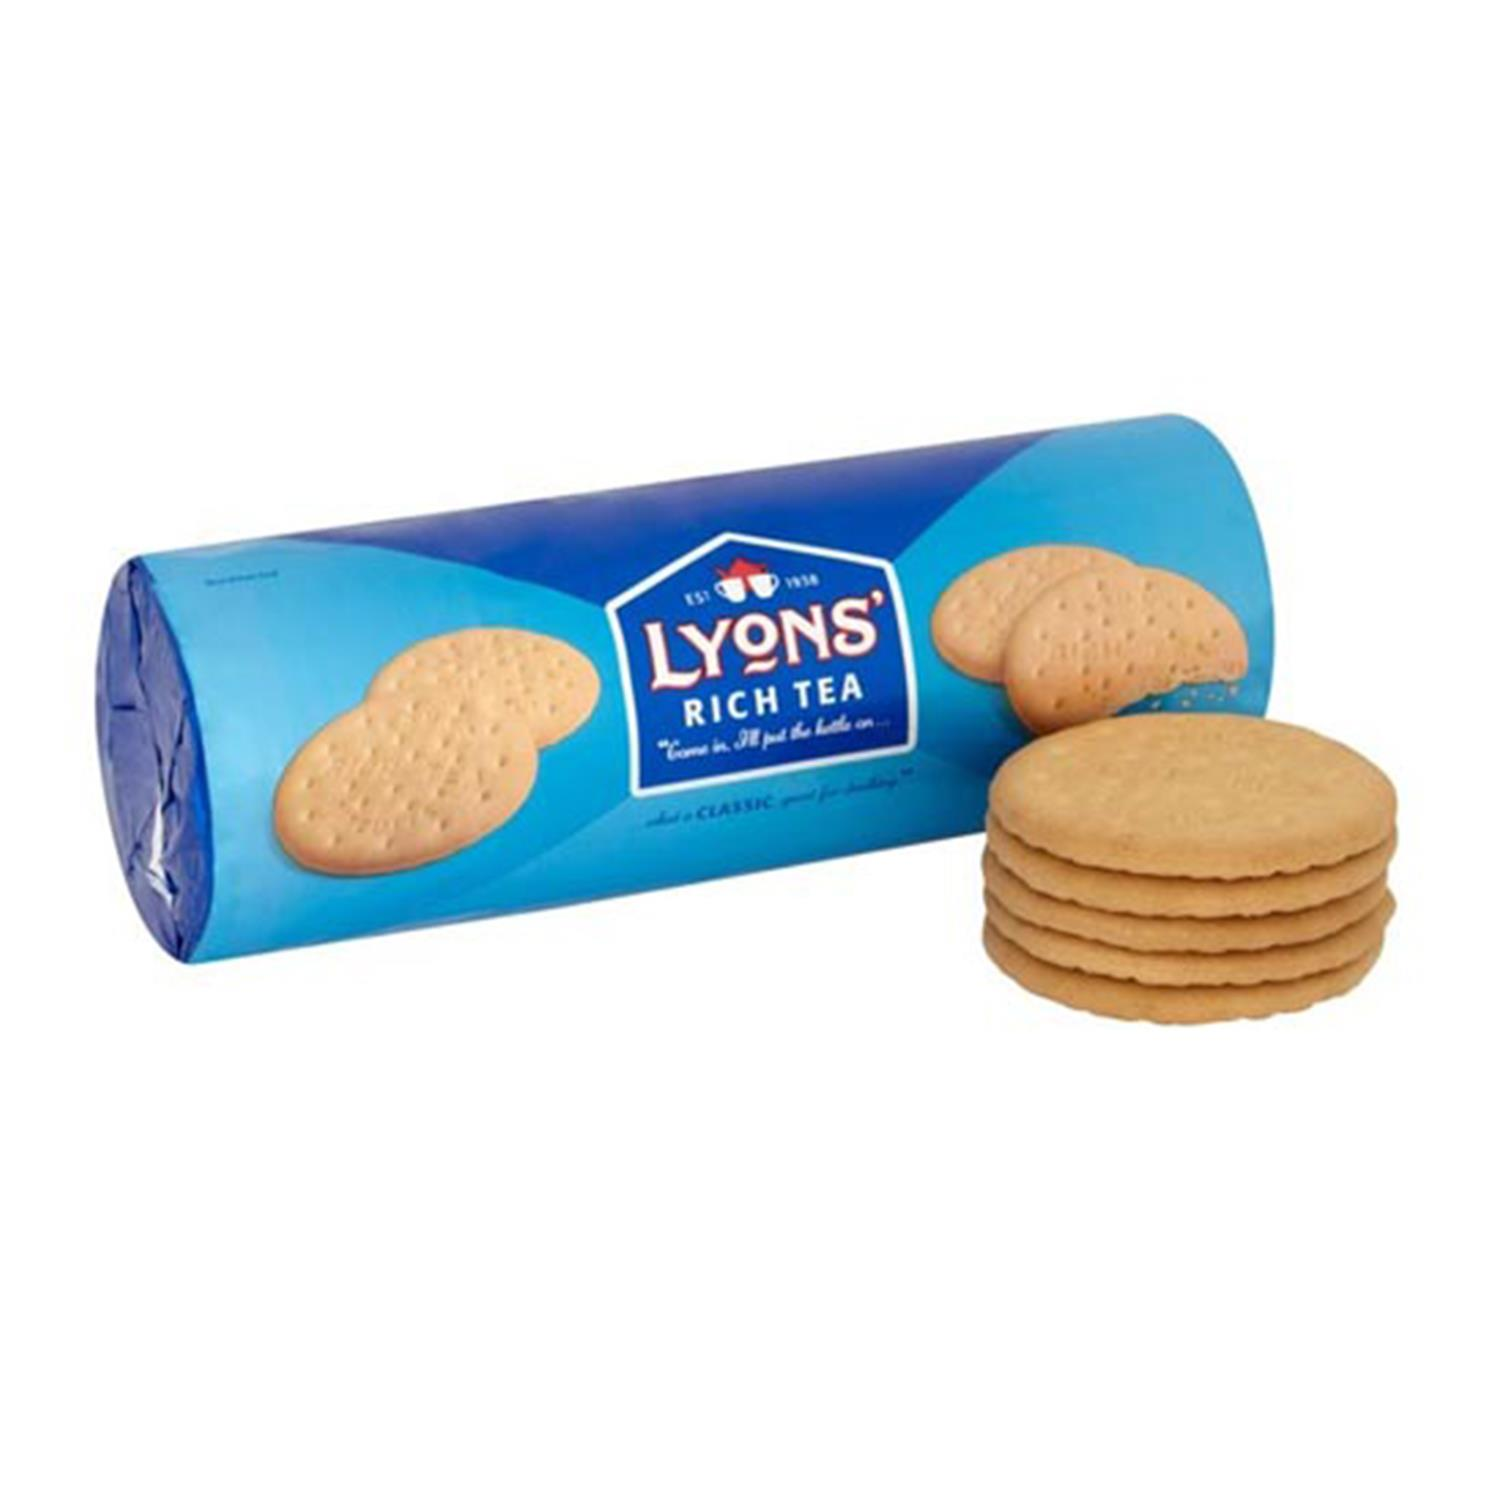 thumbnail 25 - Lyons Rich Tea Biscuits 300g, Great for a morning or afternoon snack